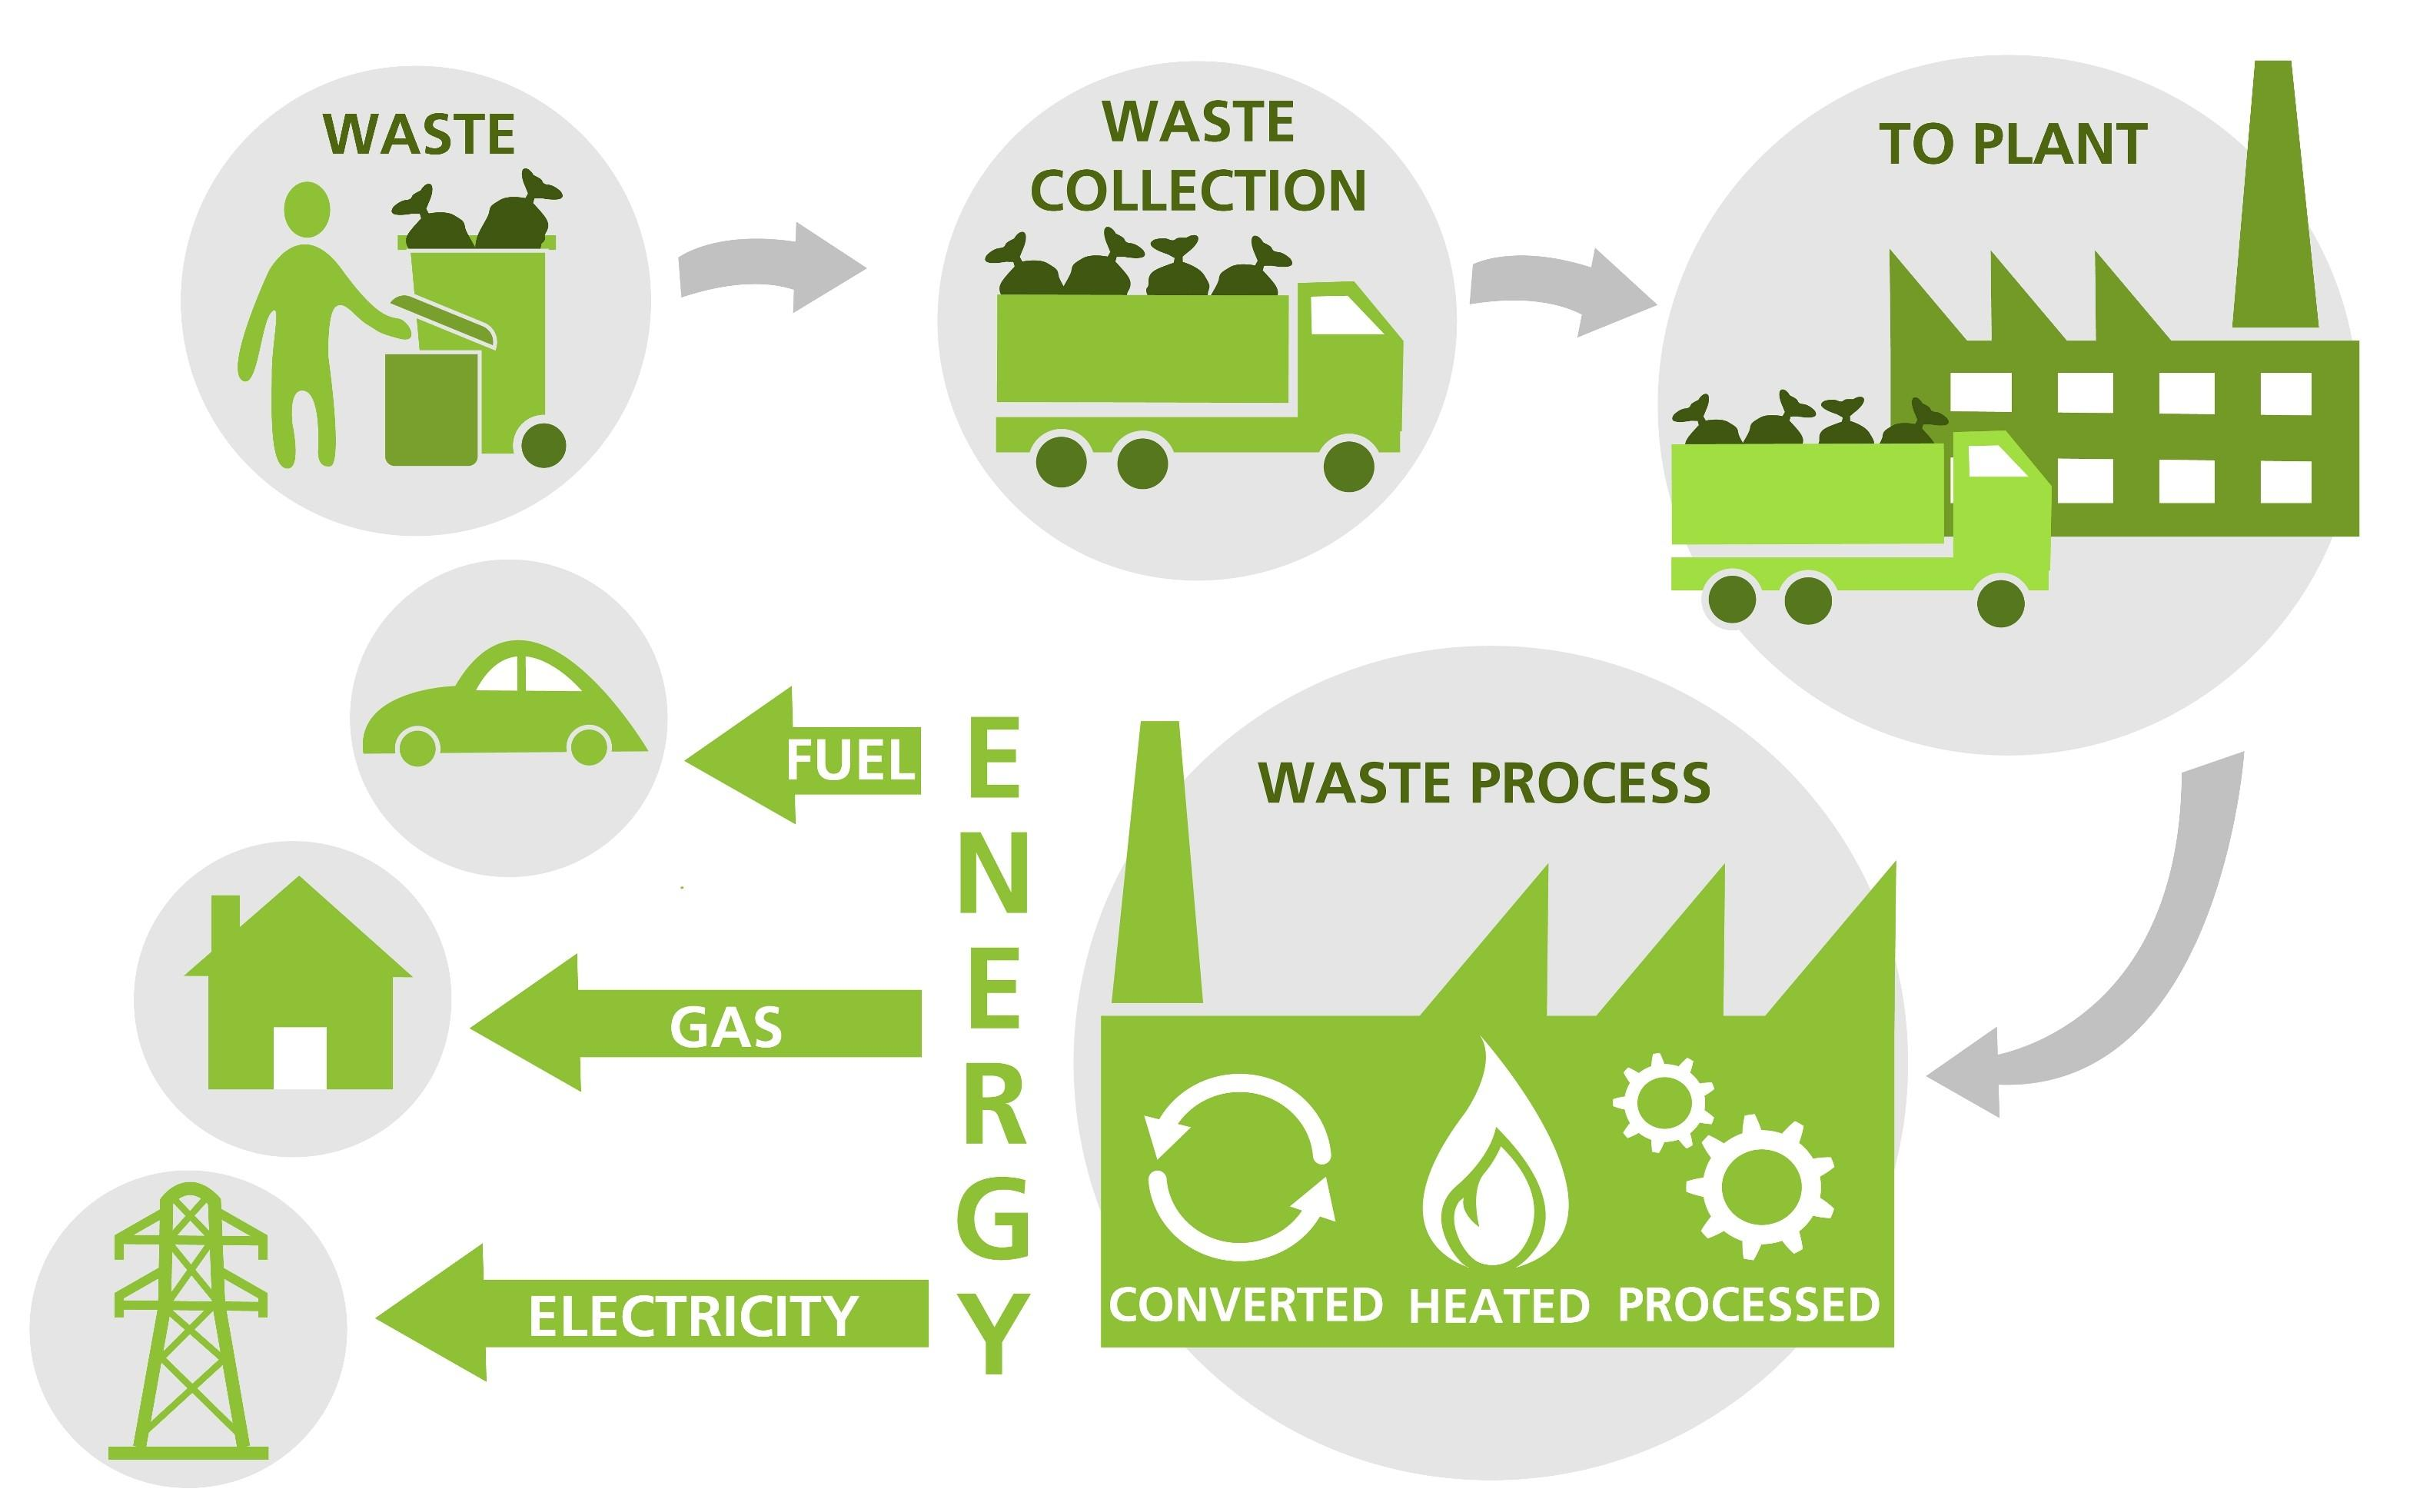 Nairobi Waste Energy Project Set Generate Power